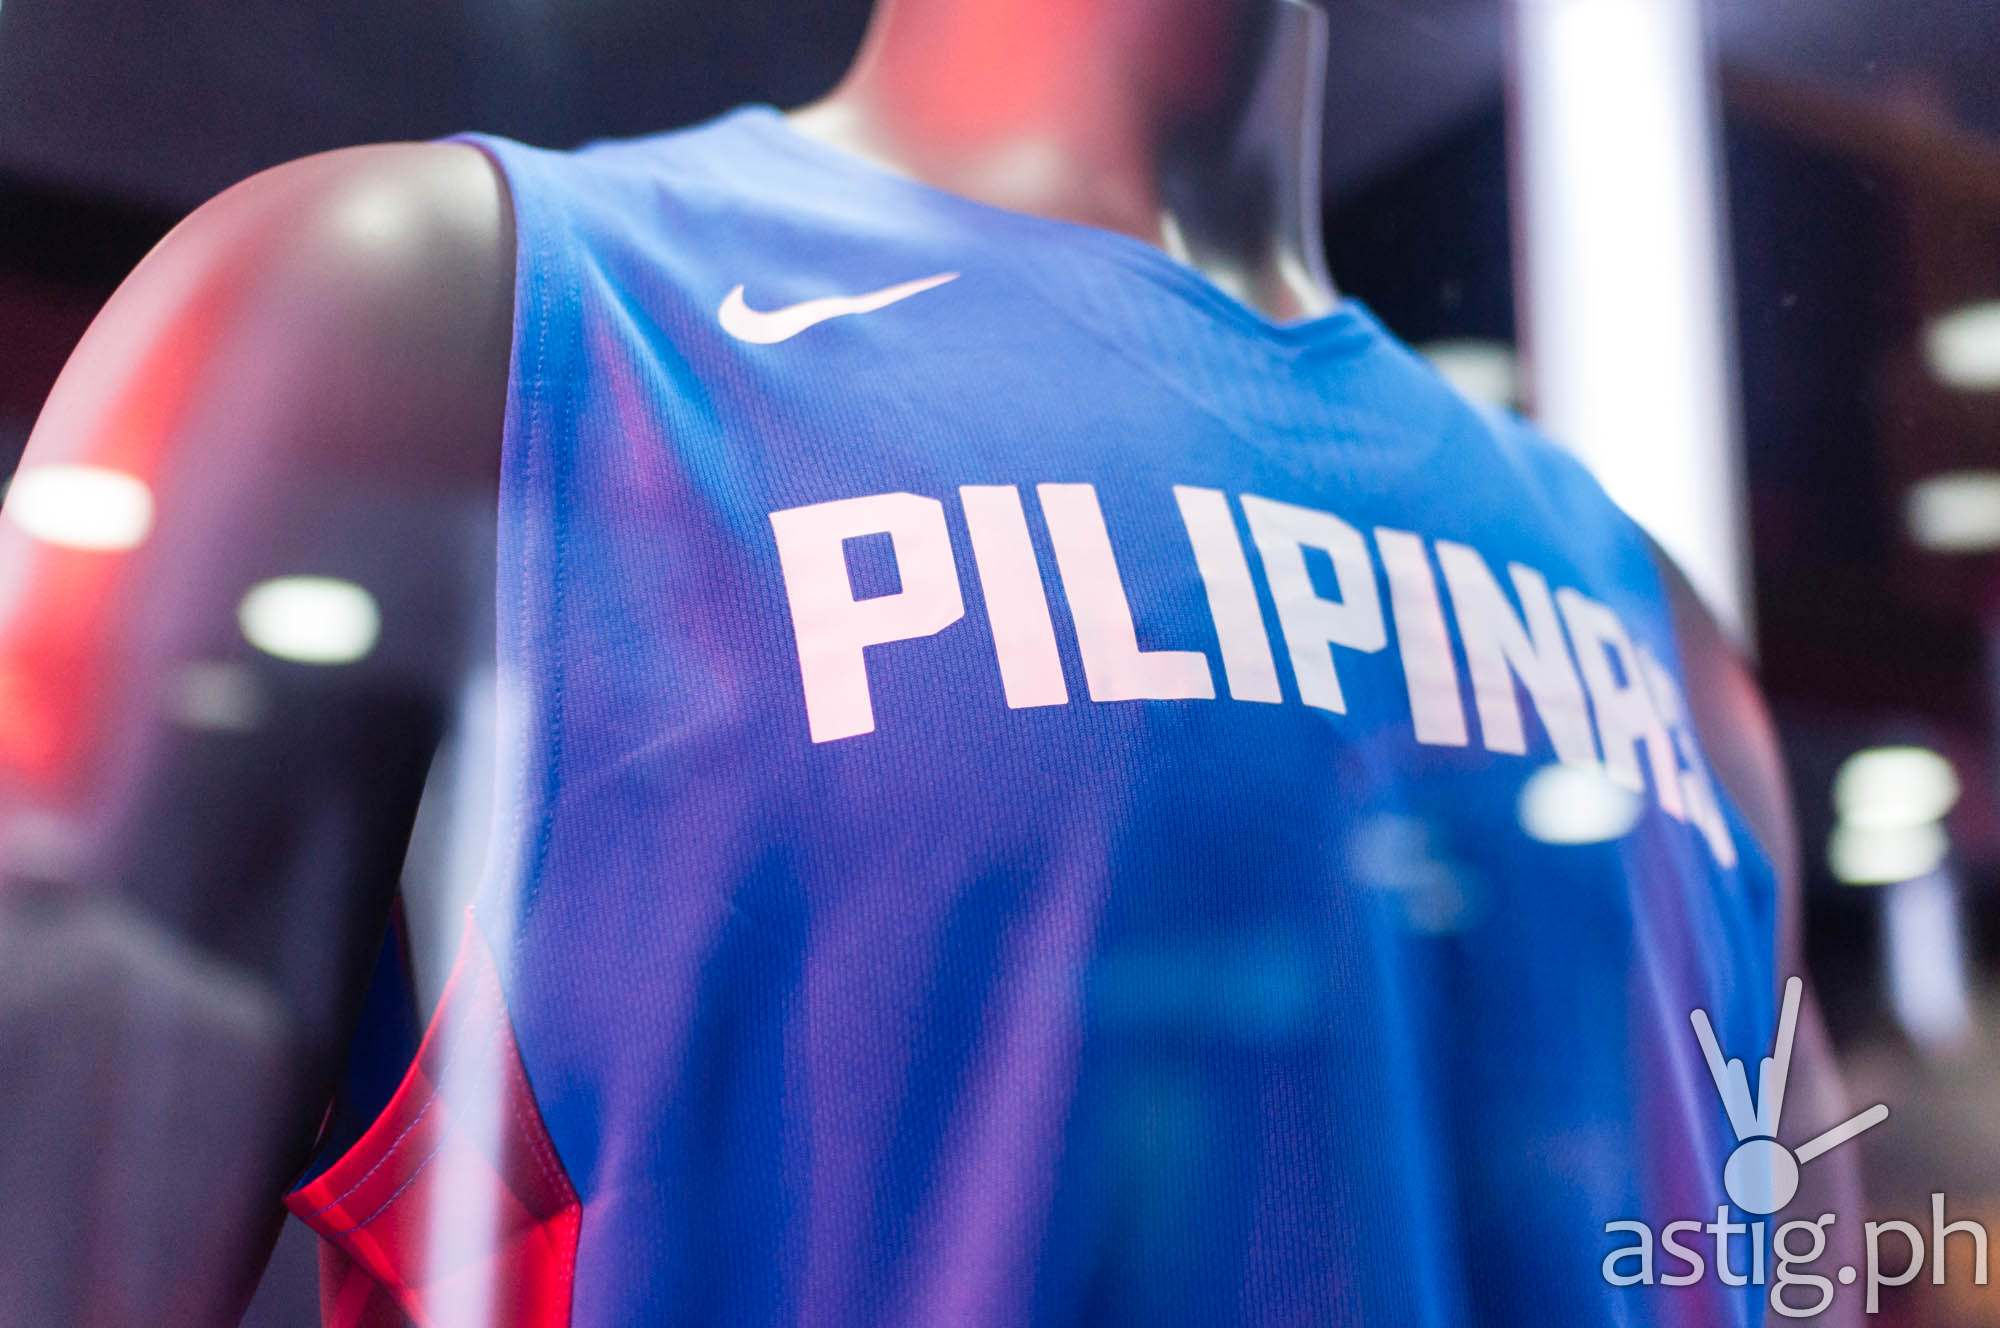 7baba0e3df2 Gilas Pilipinas' 2014 FIBA jerseys launched by Nike | ASTIG.PH